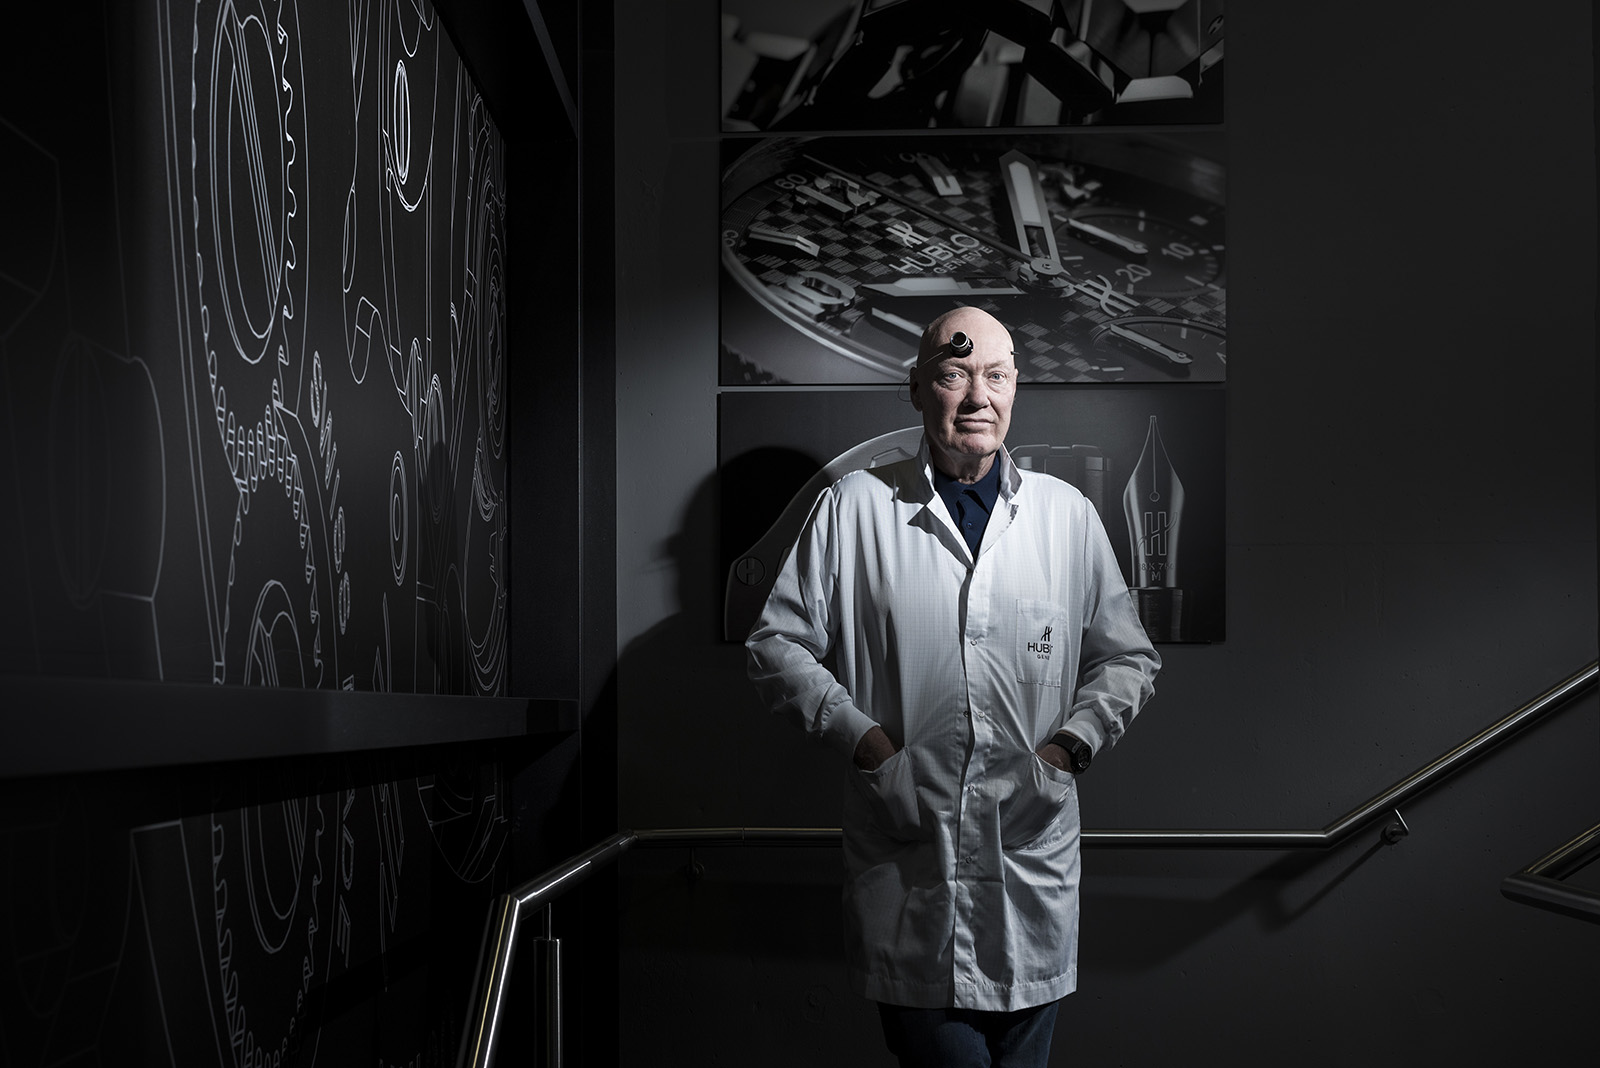 Jean-Claude Biver, head of the watch division at luxury conglomerate LVMH Moet Hennessy Louis Vuitton. Hublot Manufacture, Nyon, Switzerland, 14 February 2018 © Fred Merz | Lundi13 for The Wall Street Journal.